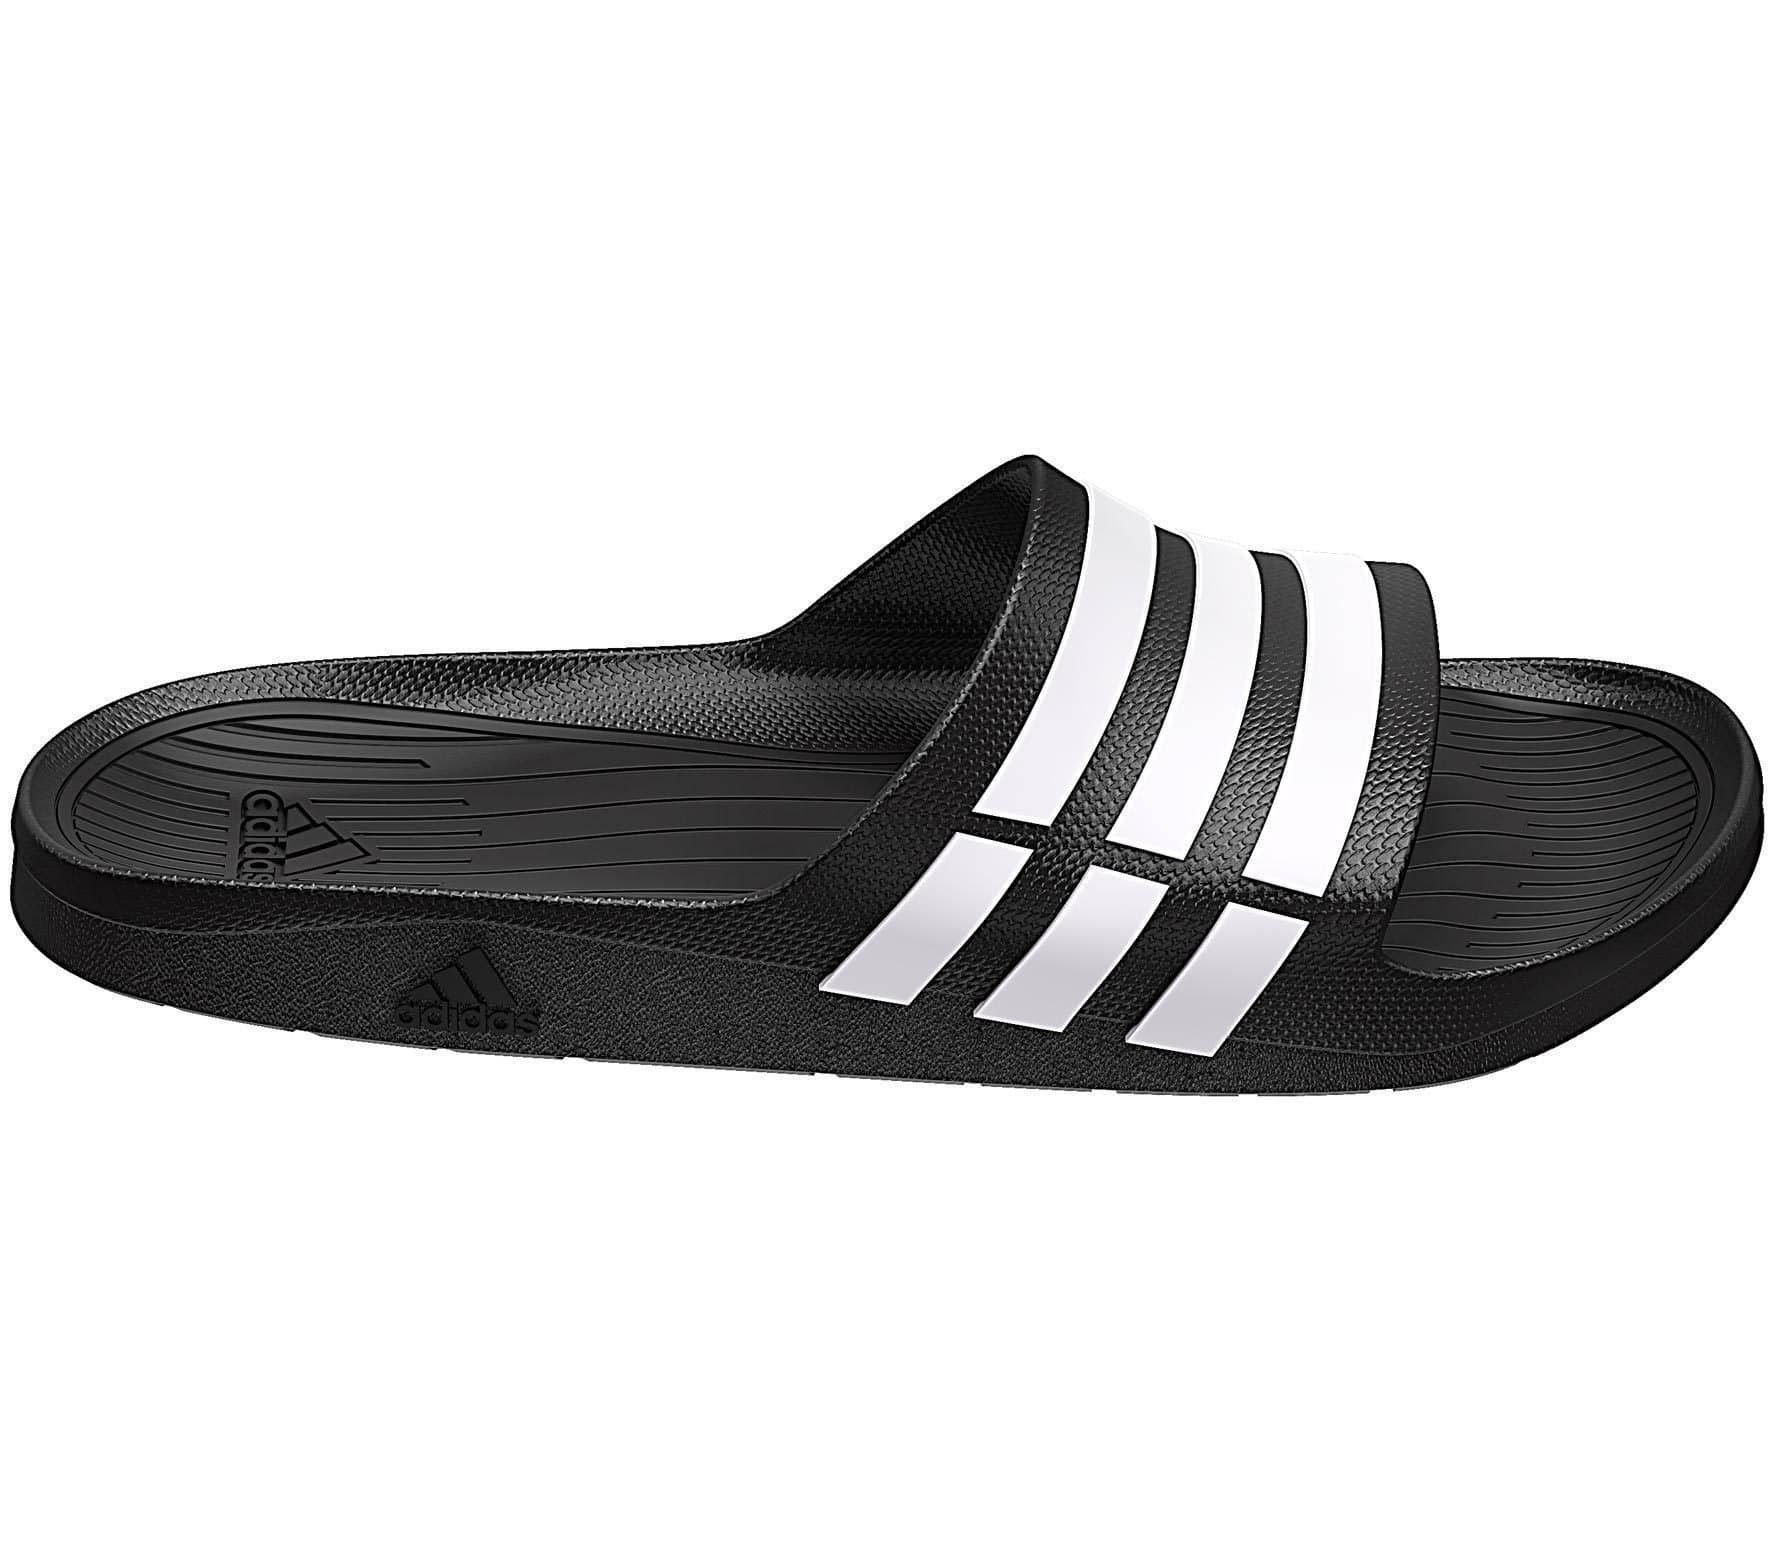 Adidas - Duramo Slide men's slides (black/white)